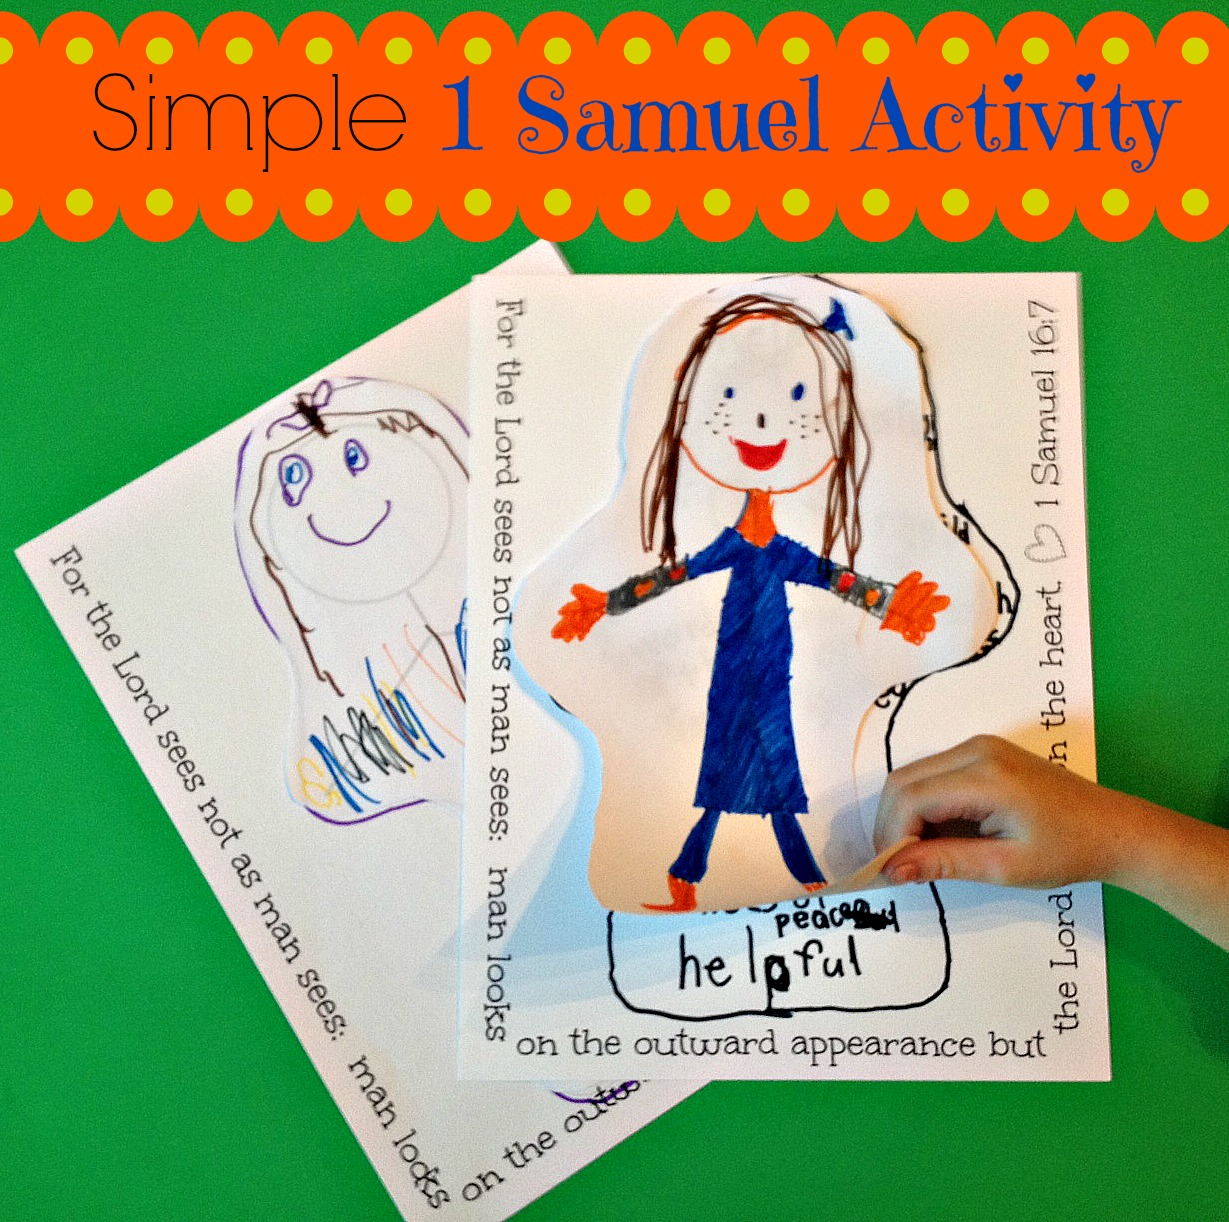 Simple 1 Samuel Activity